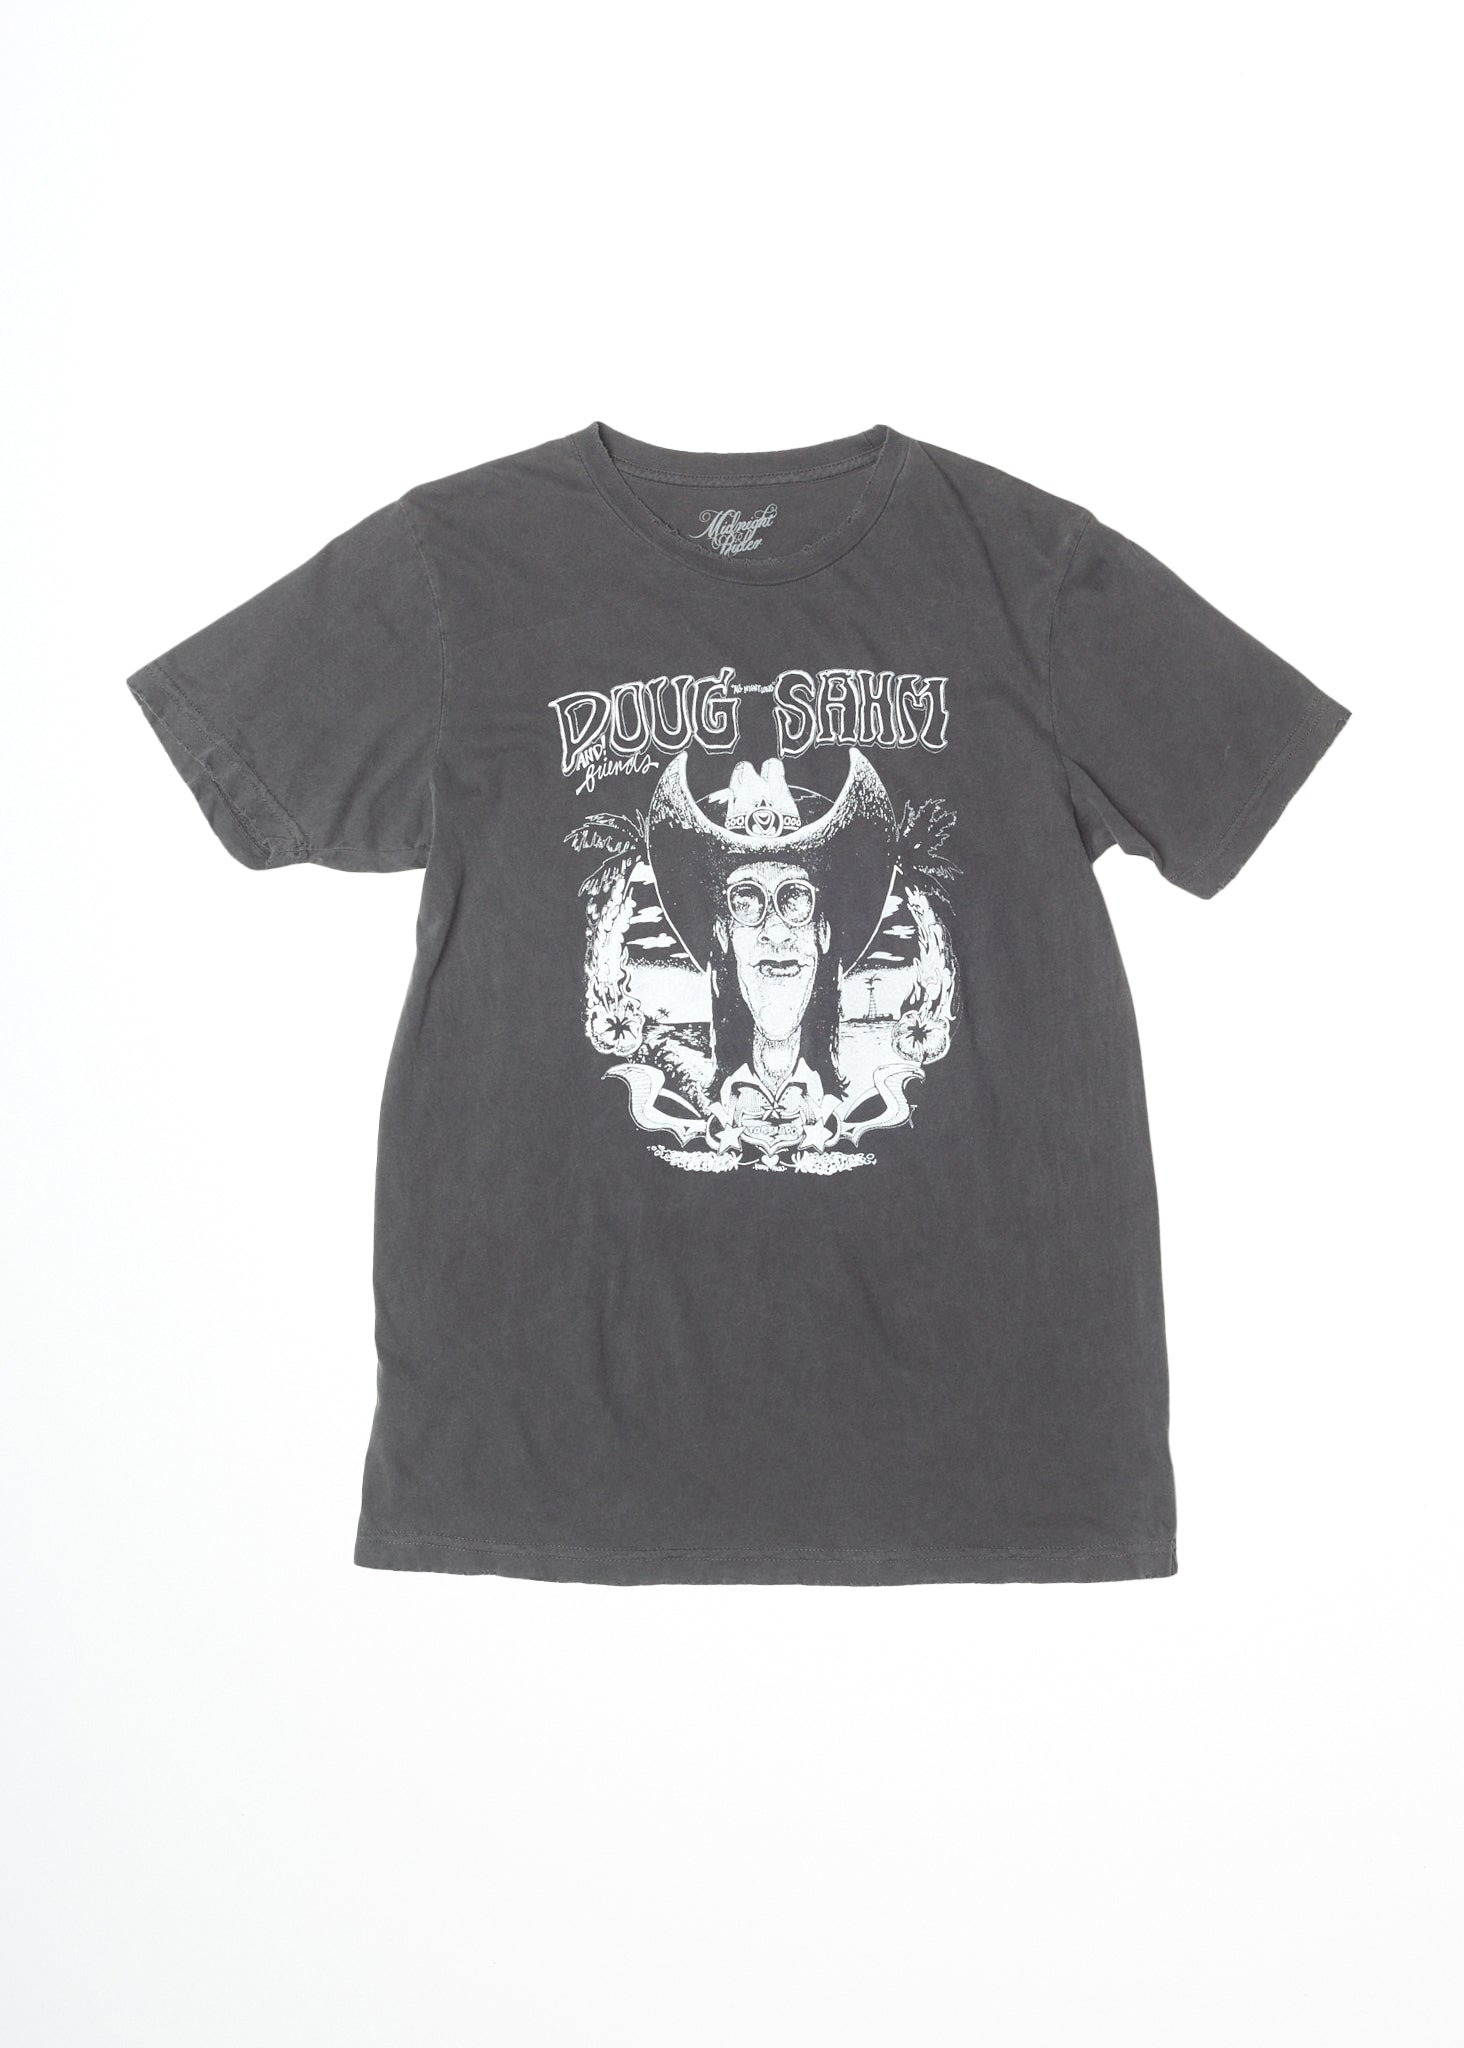 Doug Sahm & Friends Men's Crew Tee Shirt - Men's Tee Shirt - Midnight Rider